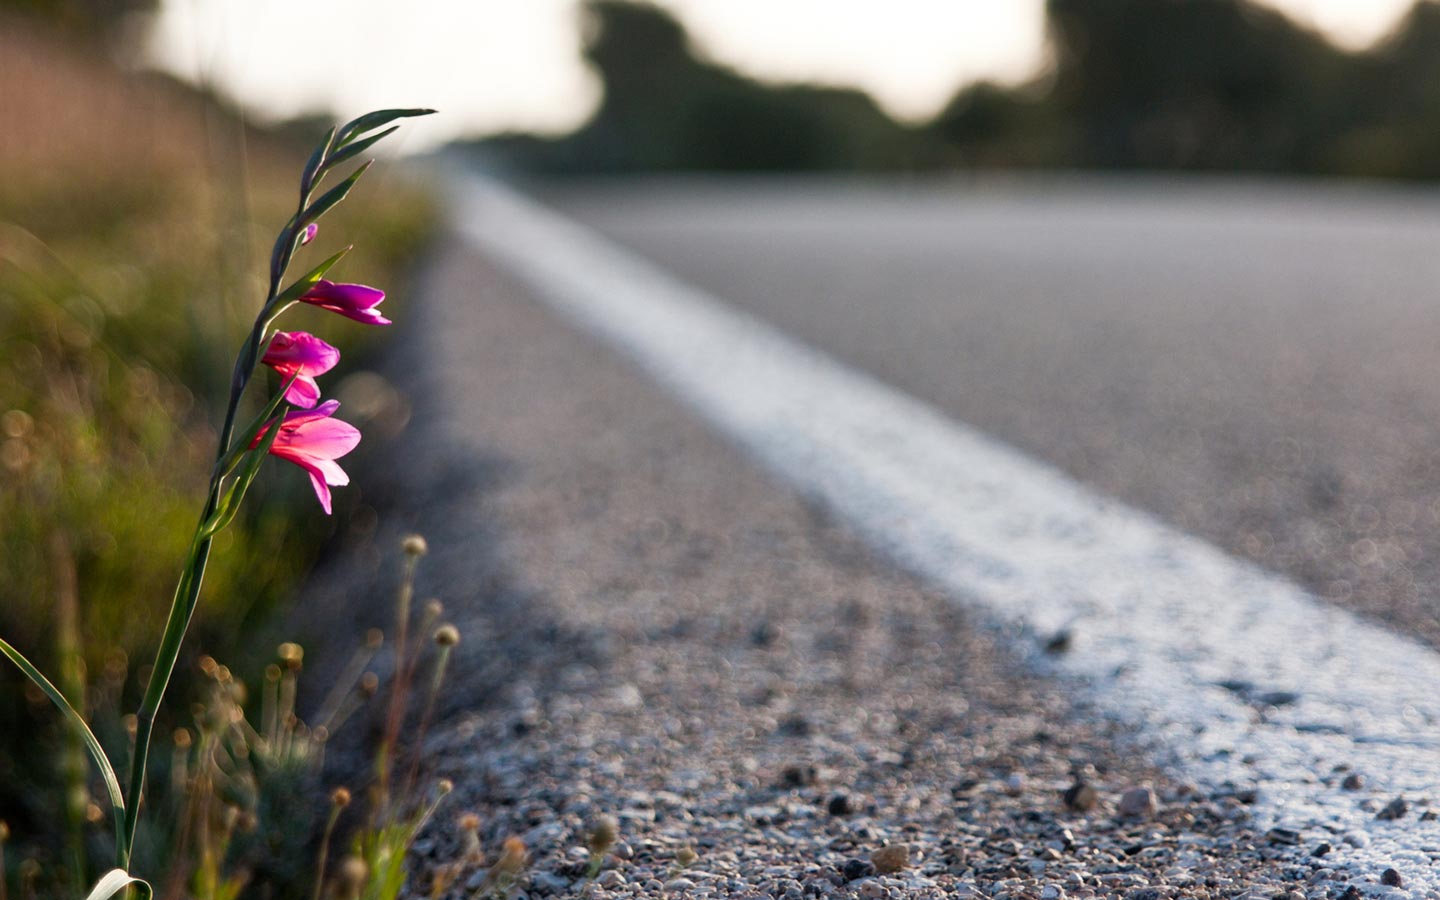 pink-flower-by-the-road-hd-free-abstract-wallpaper